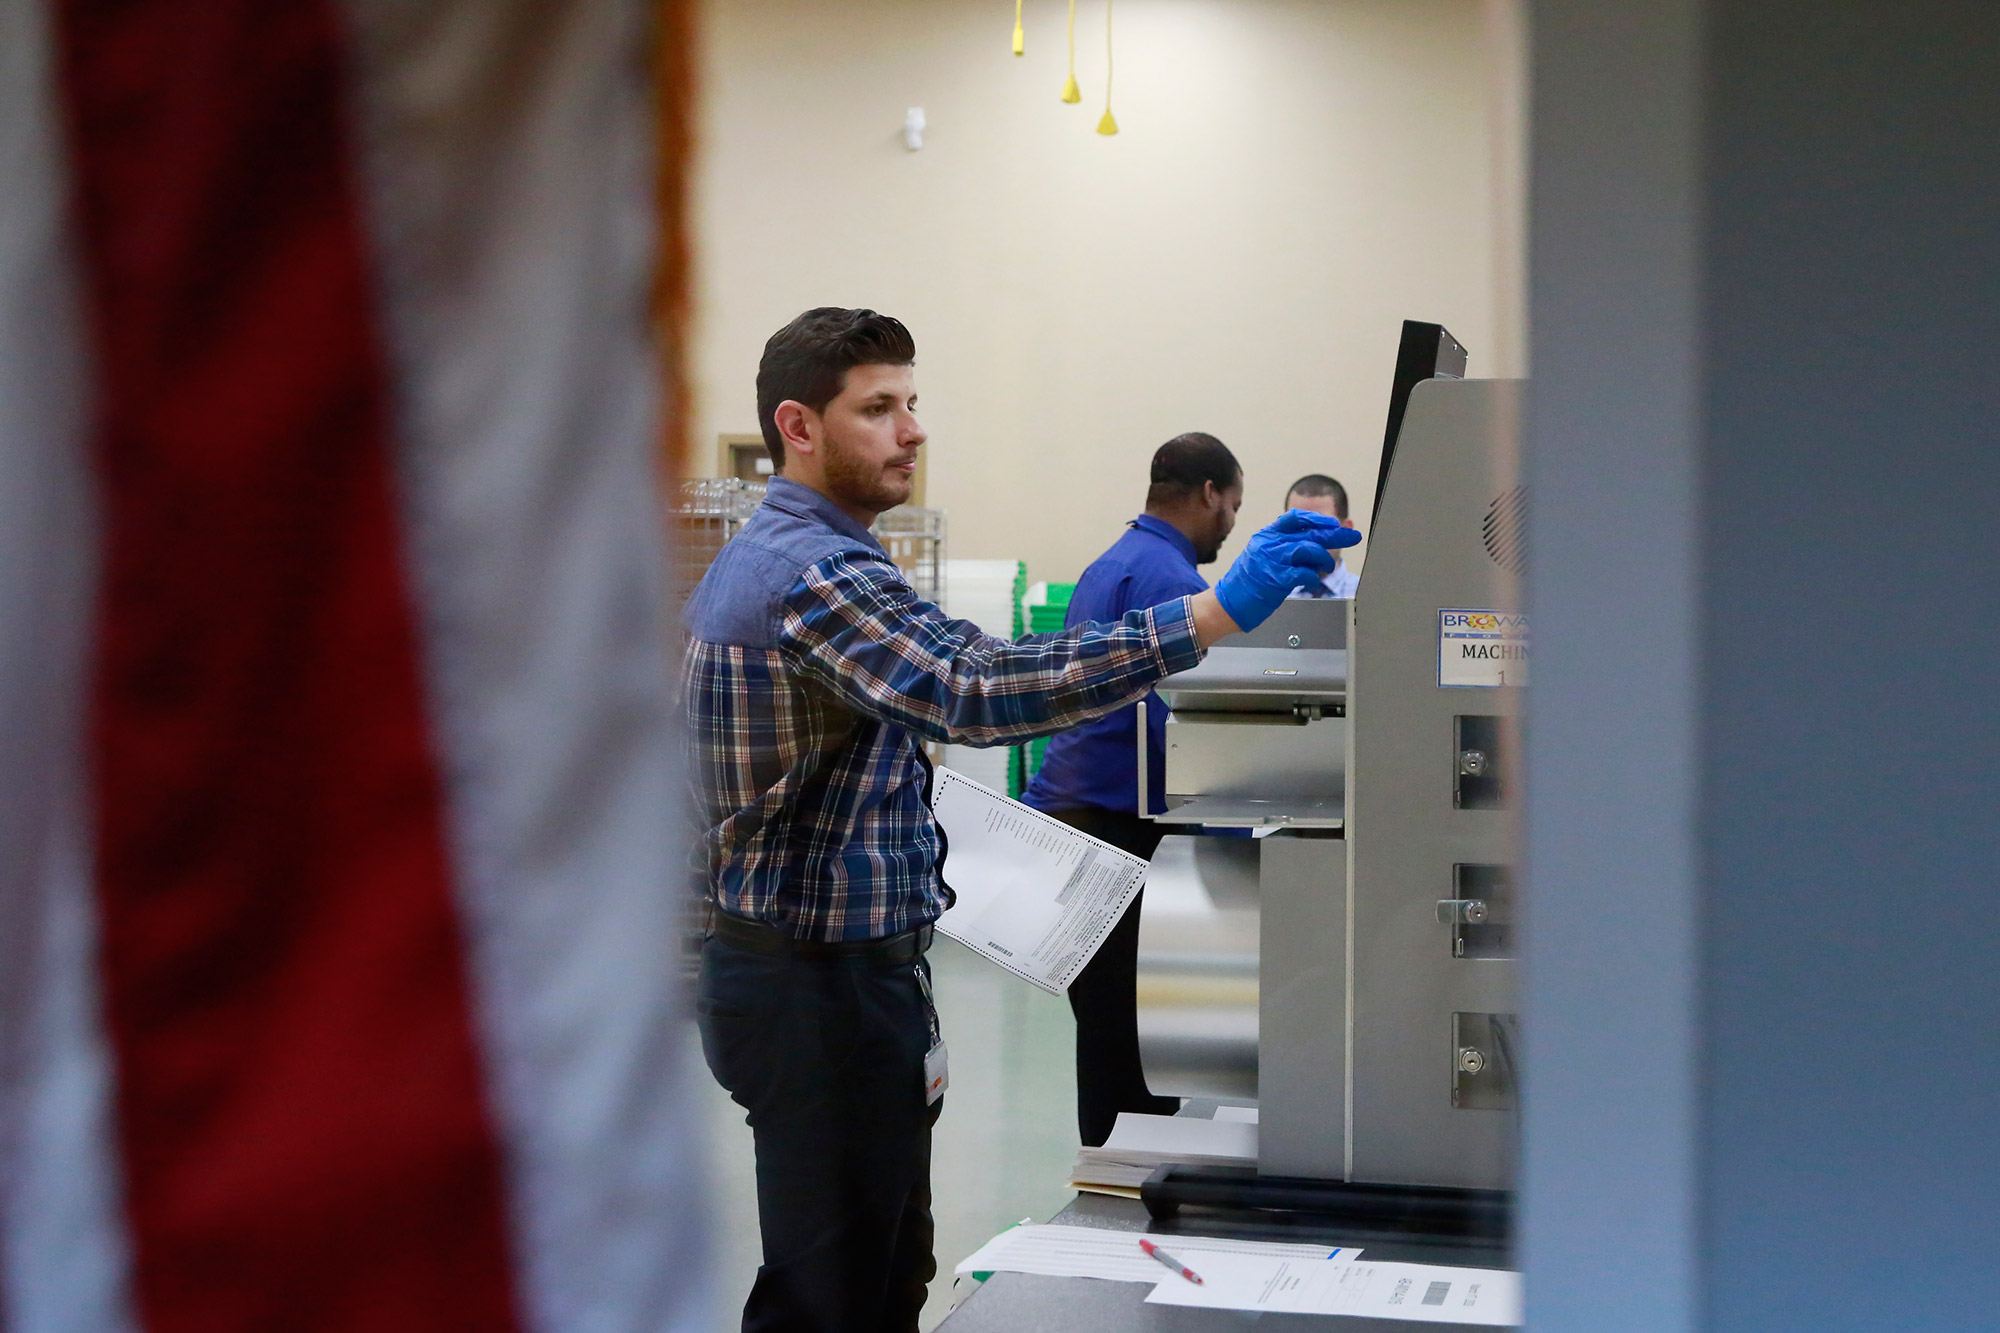 A worker wearing protective gloves counts ballots at the Broward County Supervisor of Elections Office during the Florida Primary elections, Tuesday, March 17, in Lauderhill, Florida.